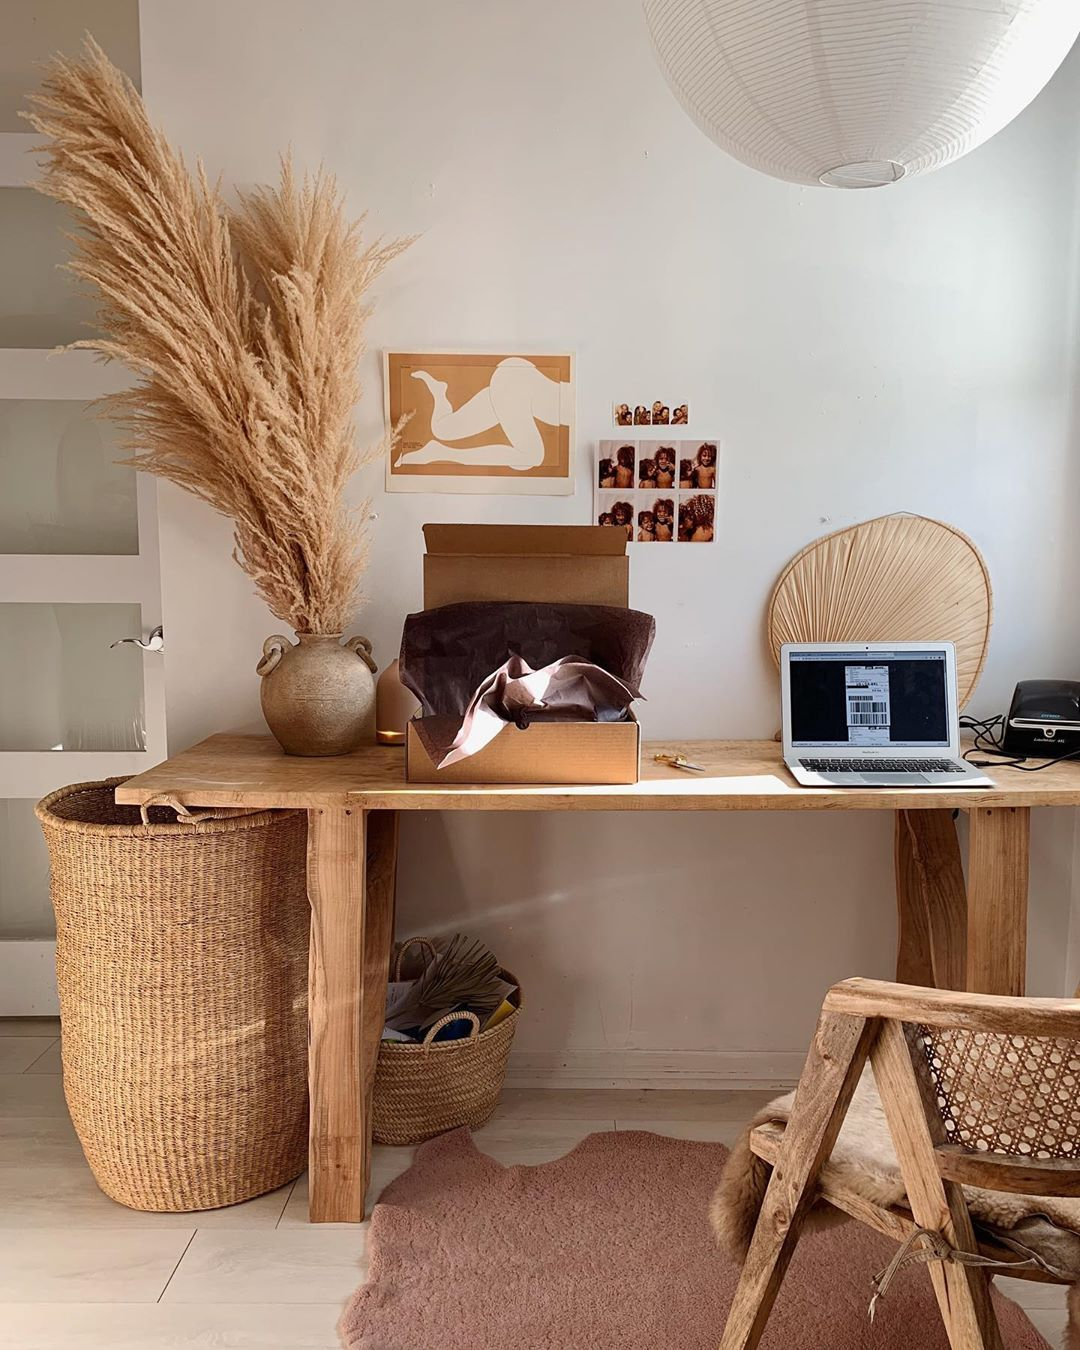 home office, wooden study table, brown floor tiles, wooden chair, rattan basket, white pendant